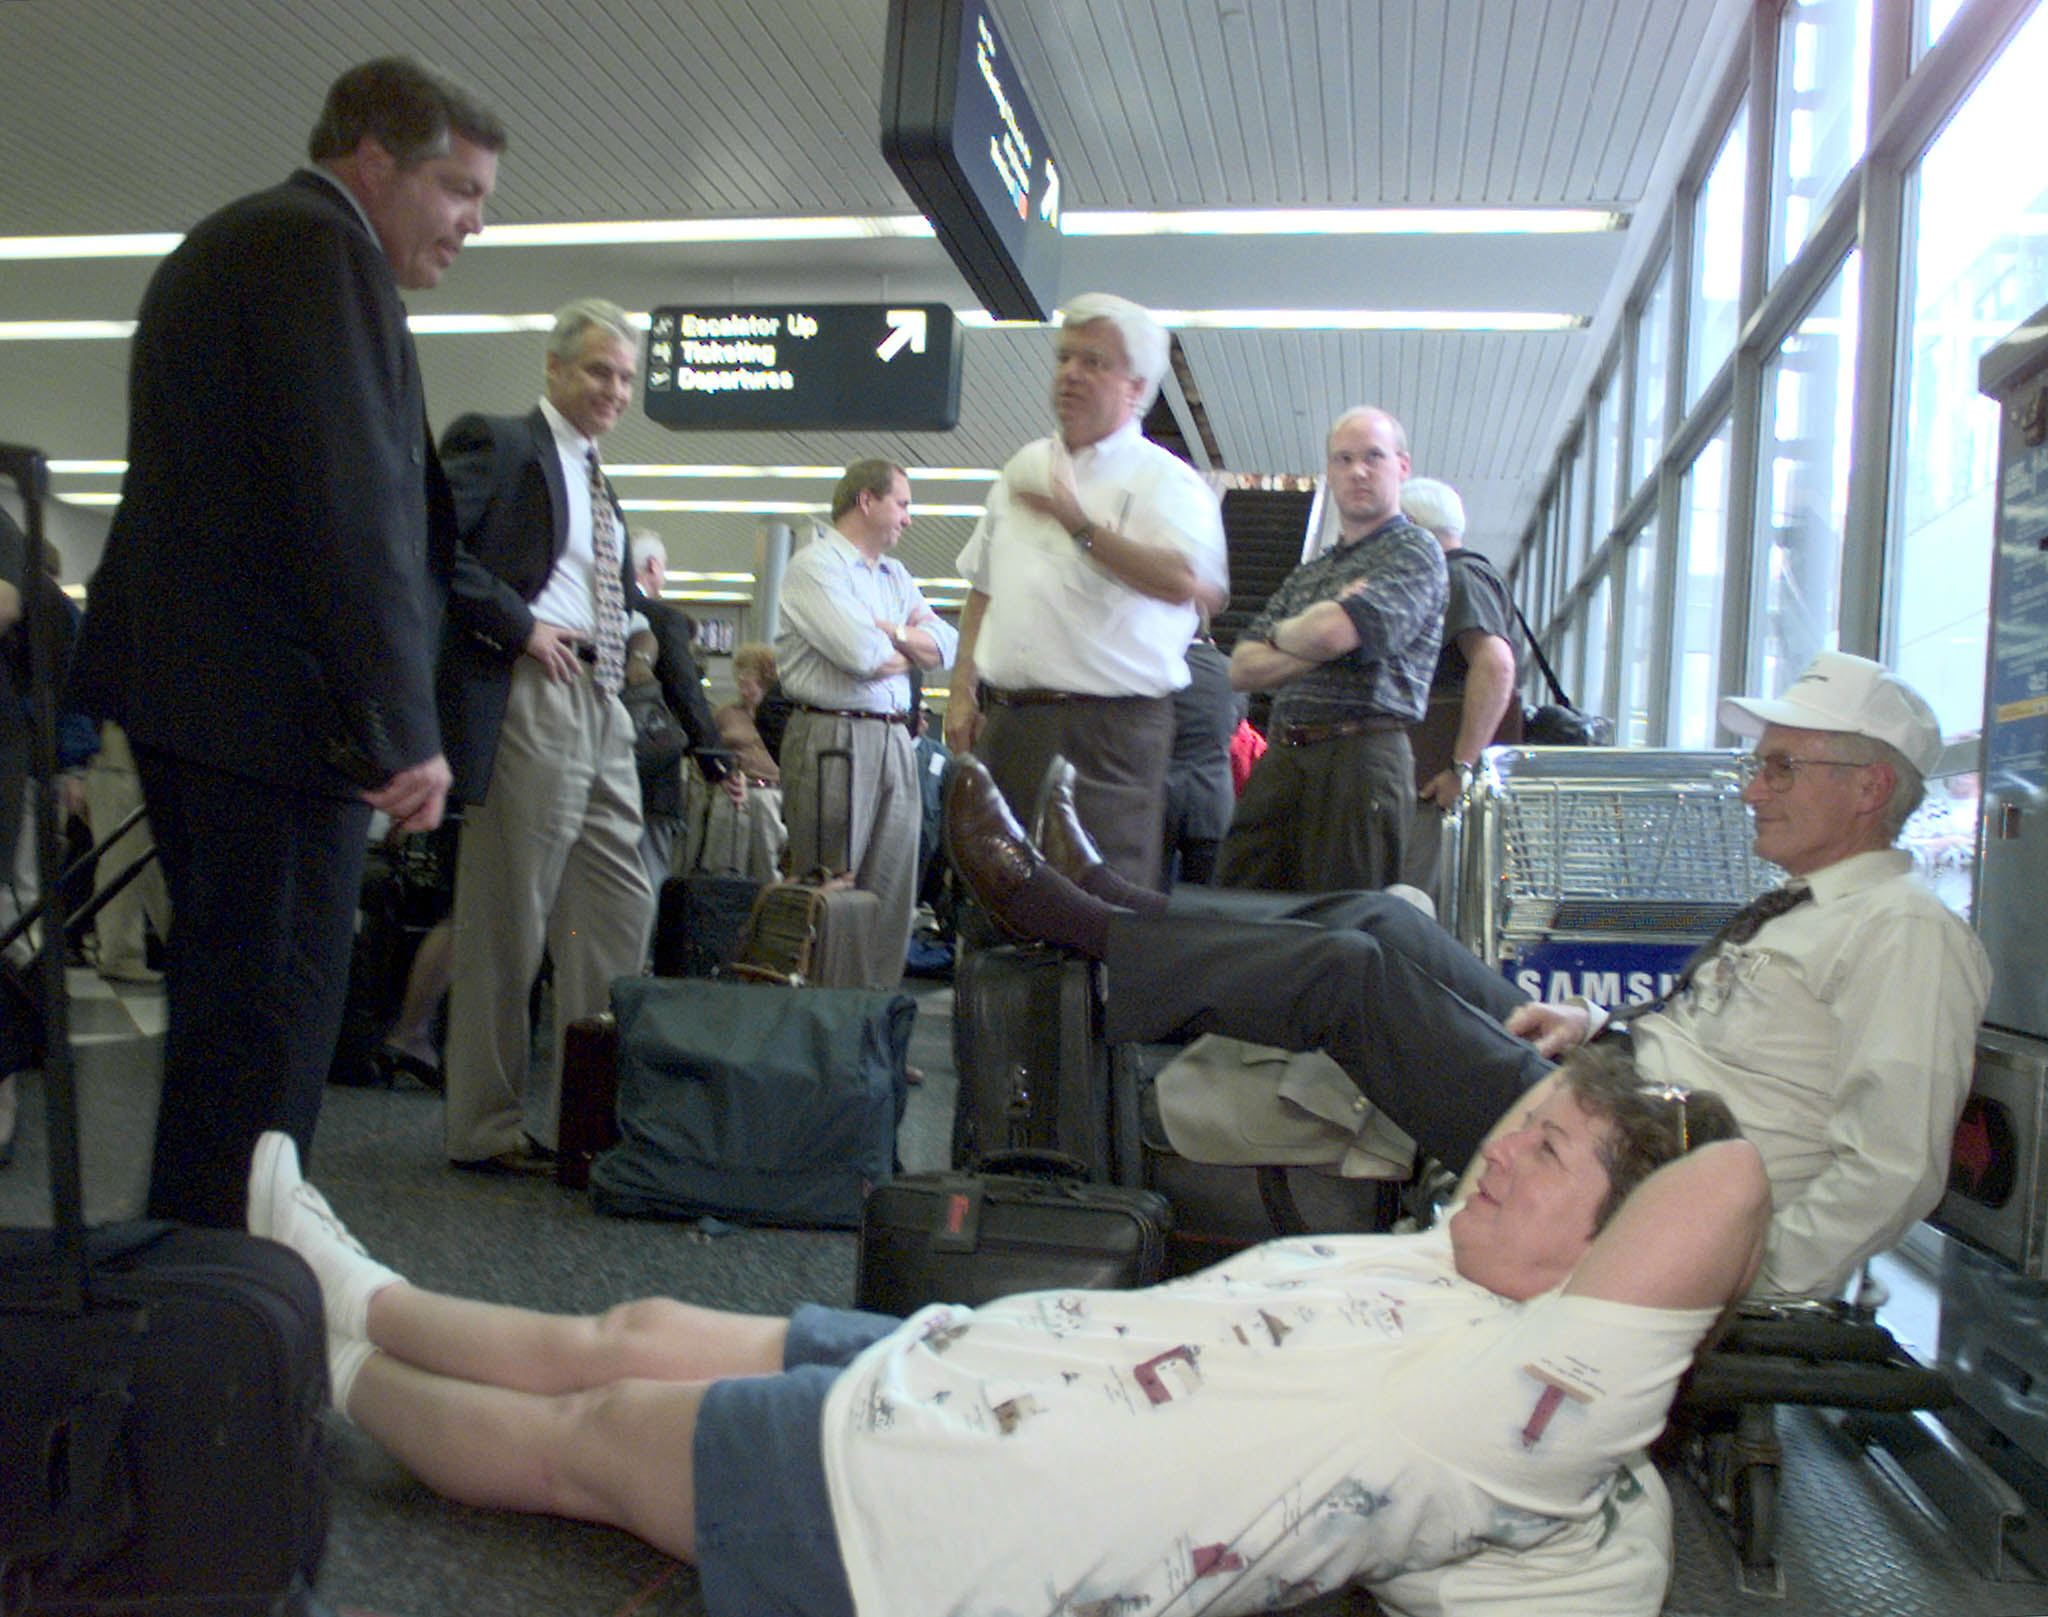 People wait at the airport in the 90s